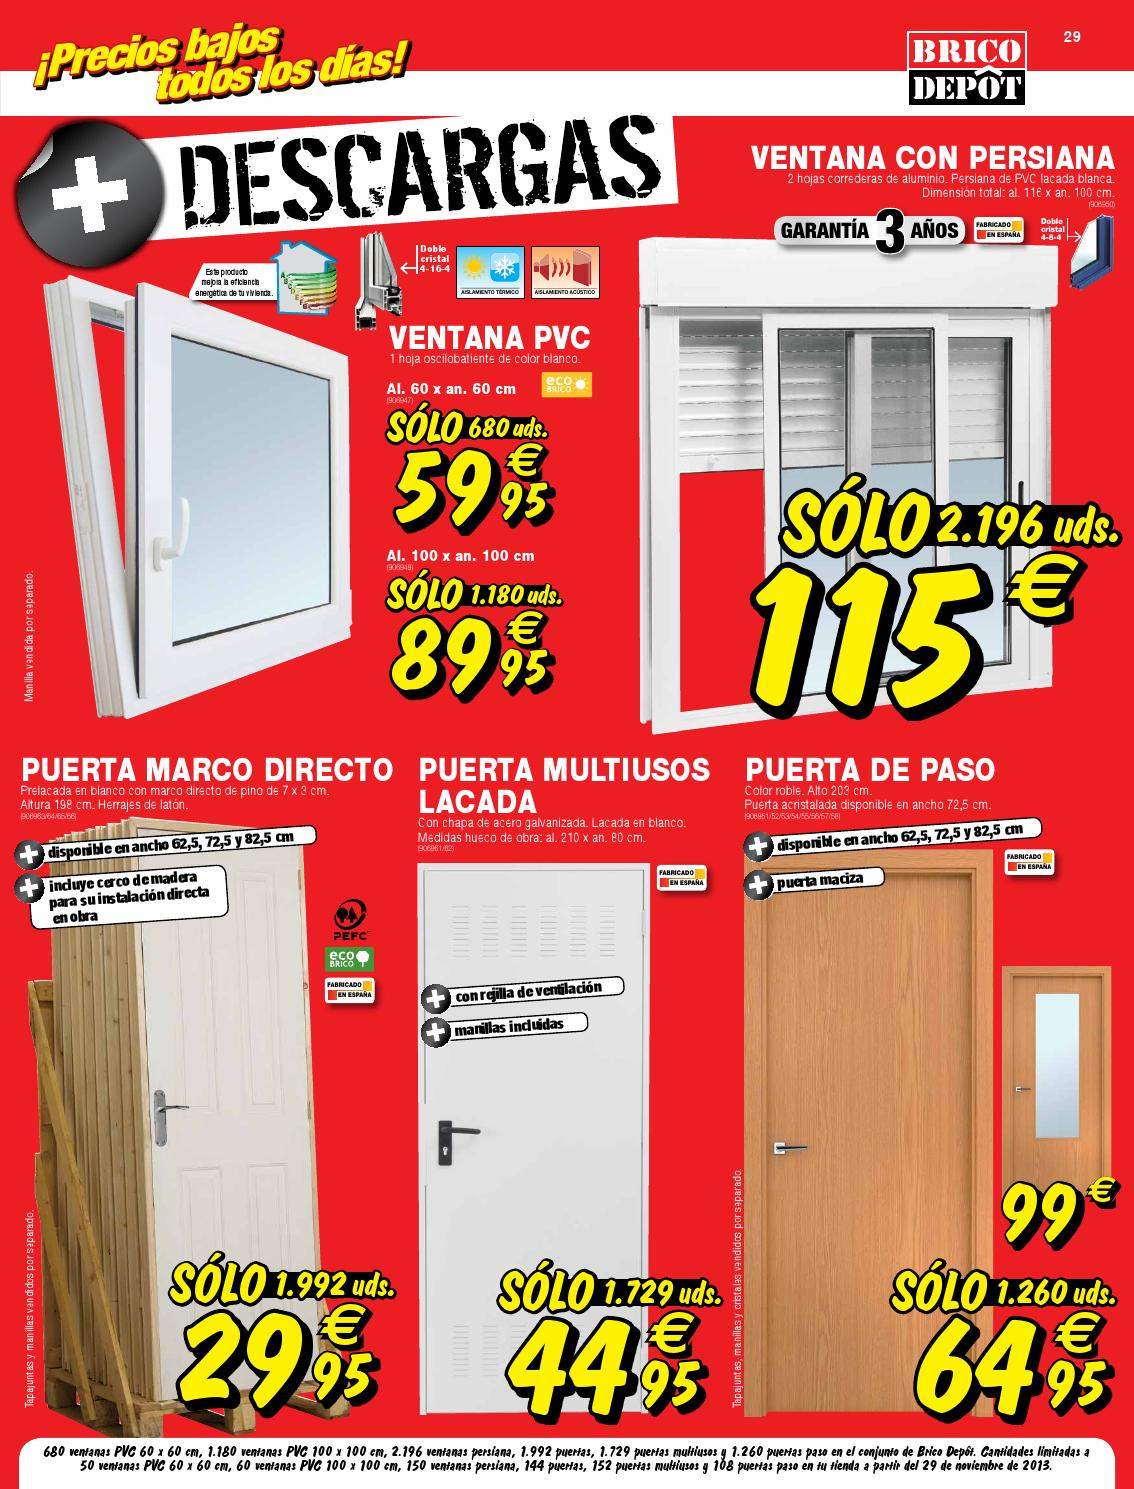 Ventanas Bricodepot Catalogo Brico Depot By Misfolletos Misfolletos Issuu